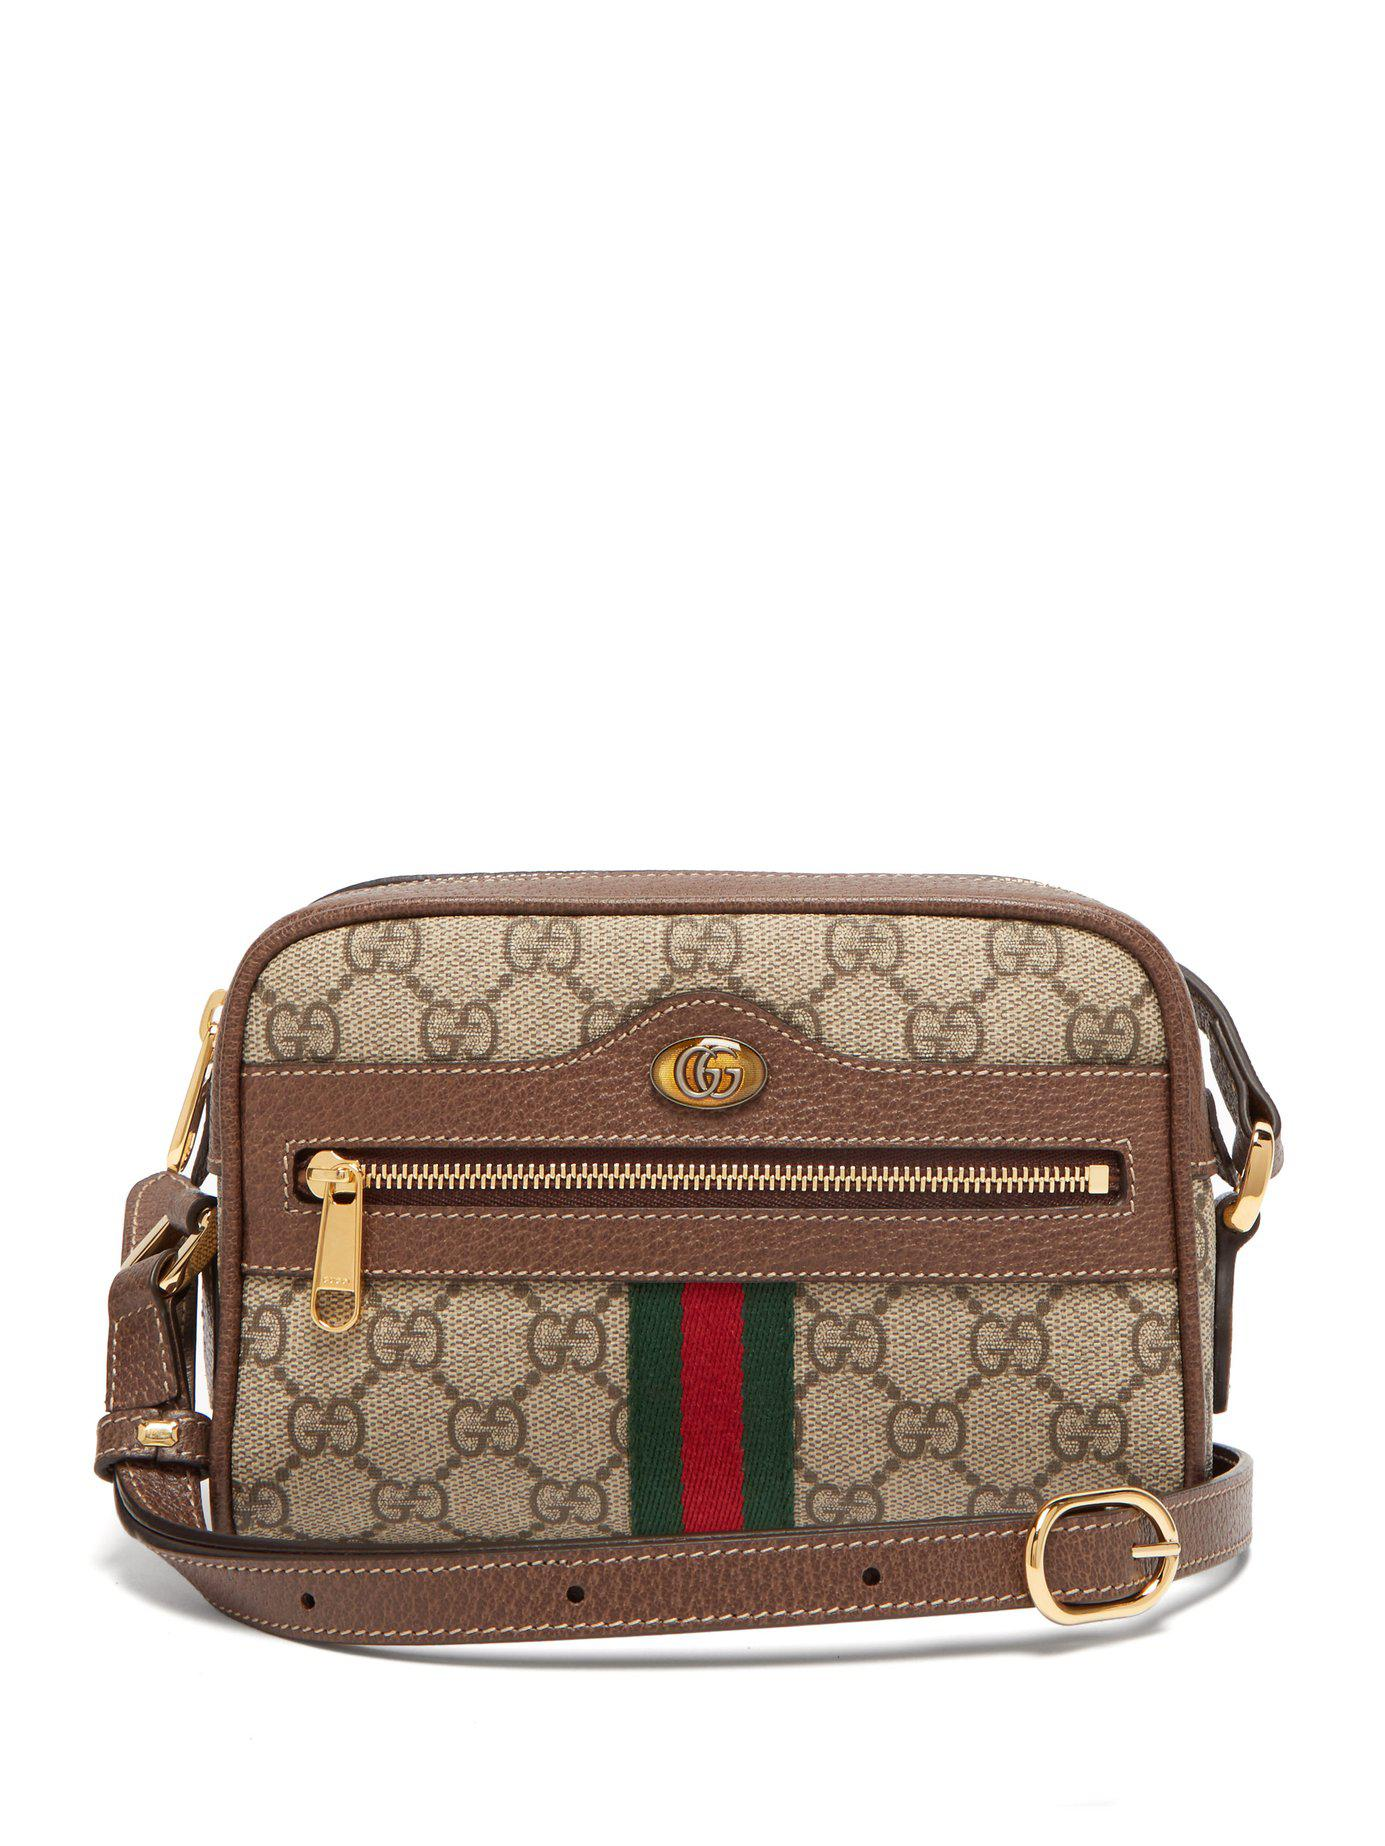 b3d2f966cbd Lyst - Gucci Ophidia Gg Supreme Cross Body Mini Bag in Gray